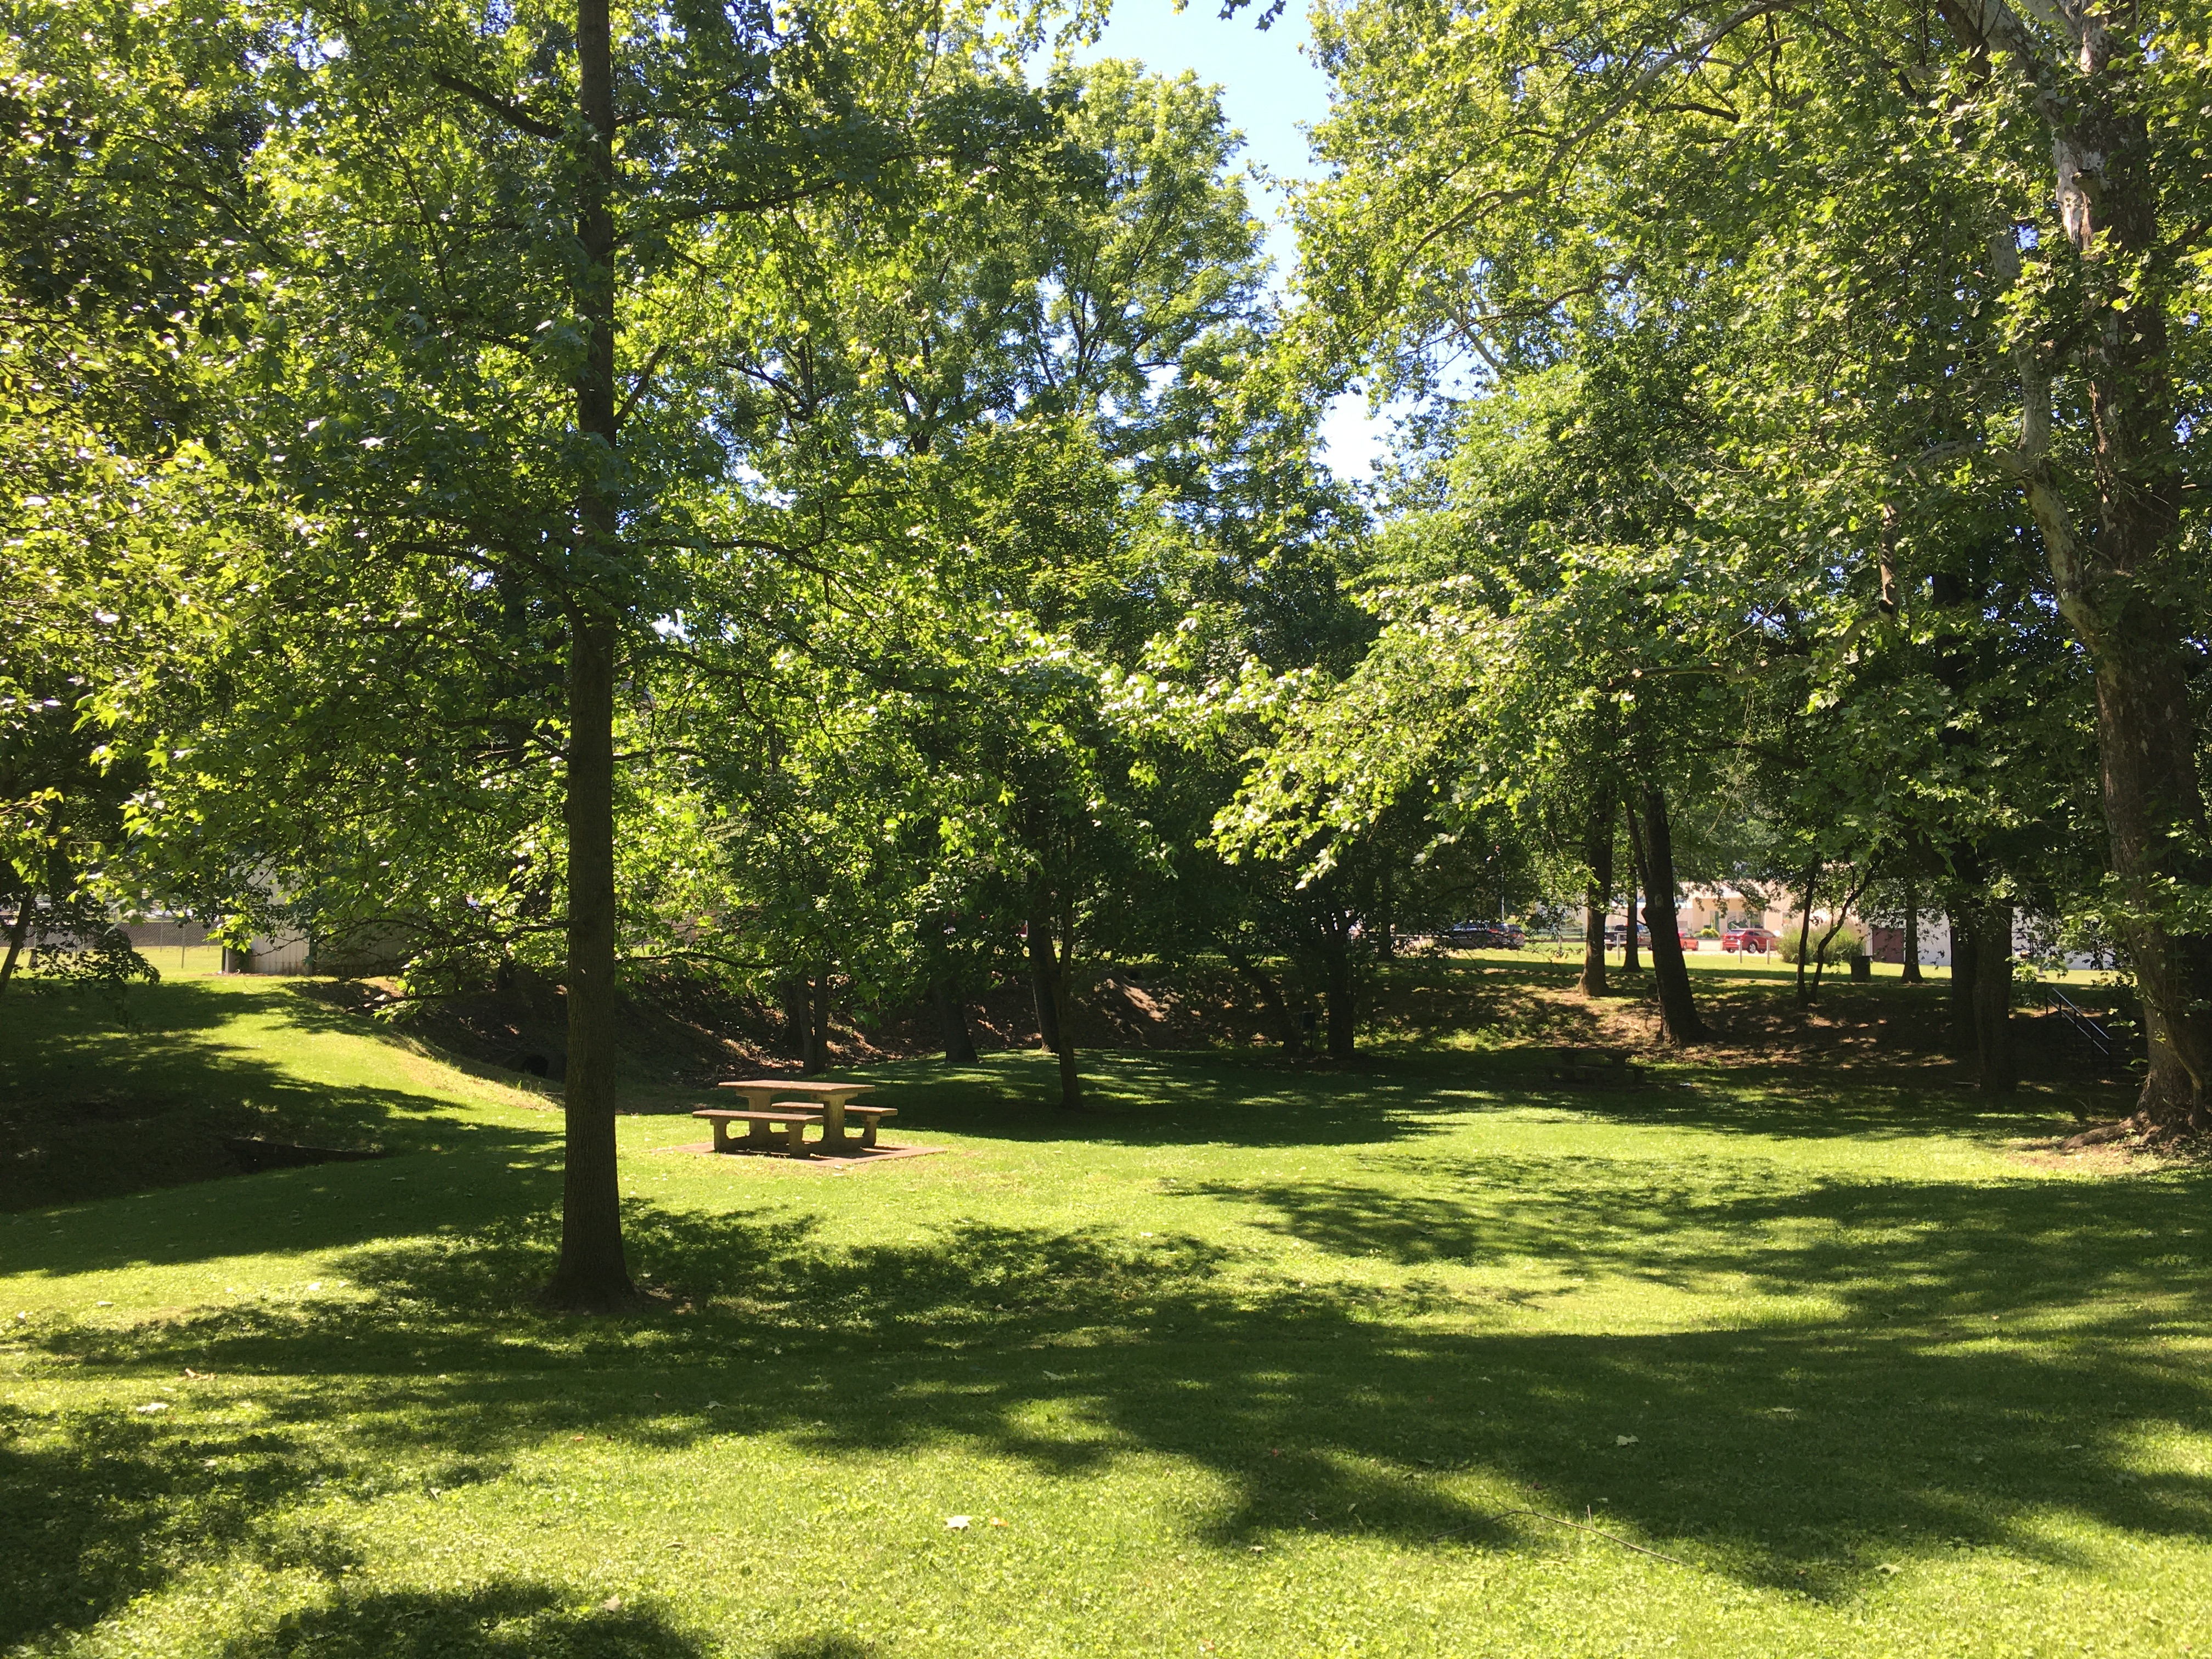 The park includes a walking trail, picnic tables, and green space for recreational activities.